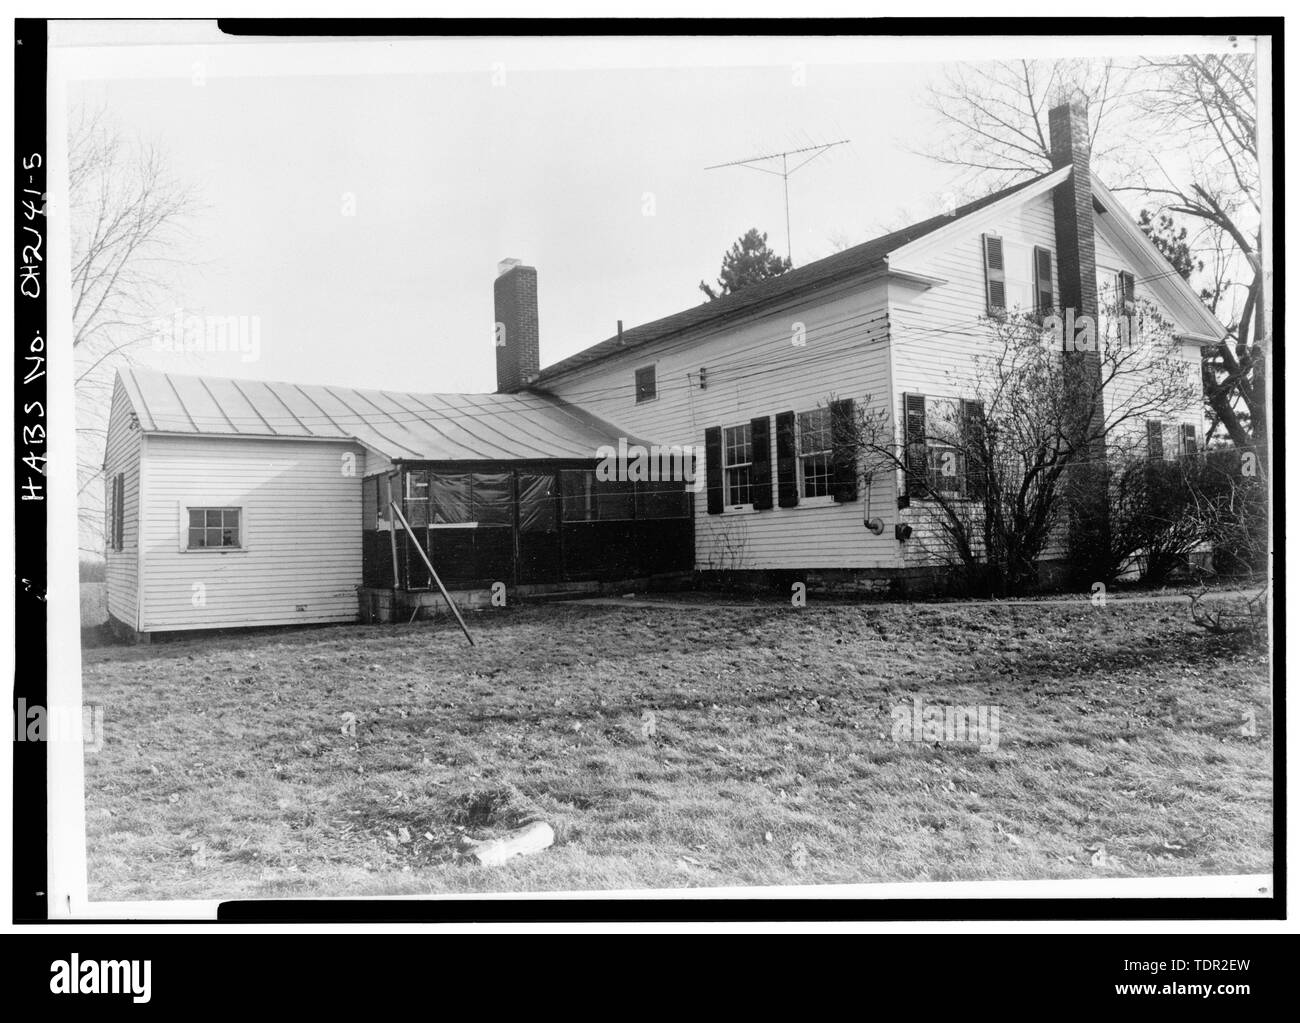 Photograph of photograph by Steckel Photographers, February 10, 1973. Original print in Field Records. NORTHWEST ELEVATION. - Abbott-Page House, Mason Road, State Route 13 vicinity, Milan, Erie County, OH - Stock Image